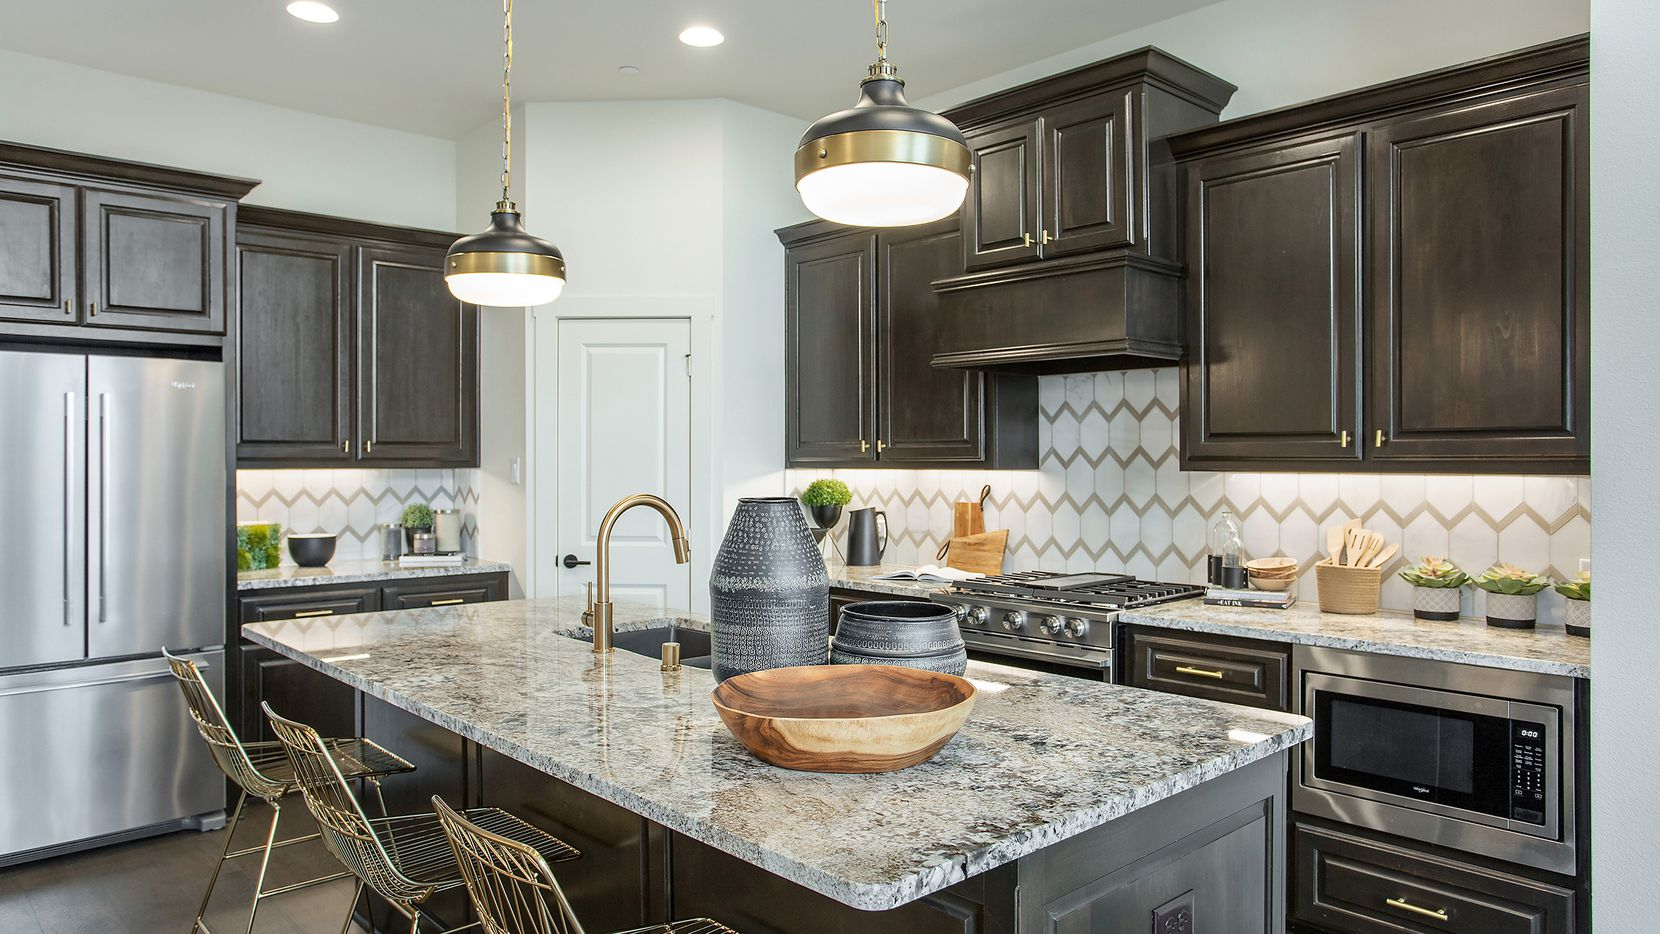 Move-in-ready villa homes by Grenadier Homes are available now in Riverset, Garland's newest master-planned community.